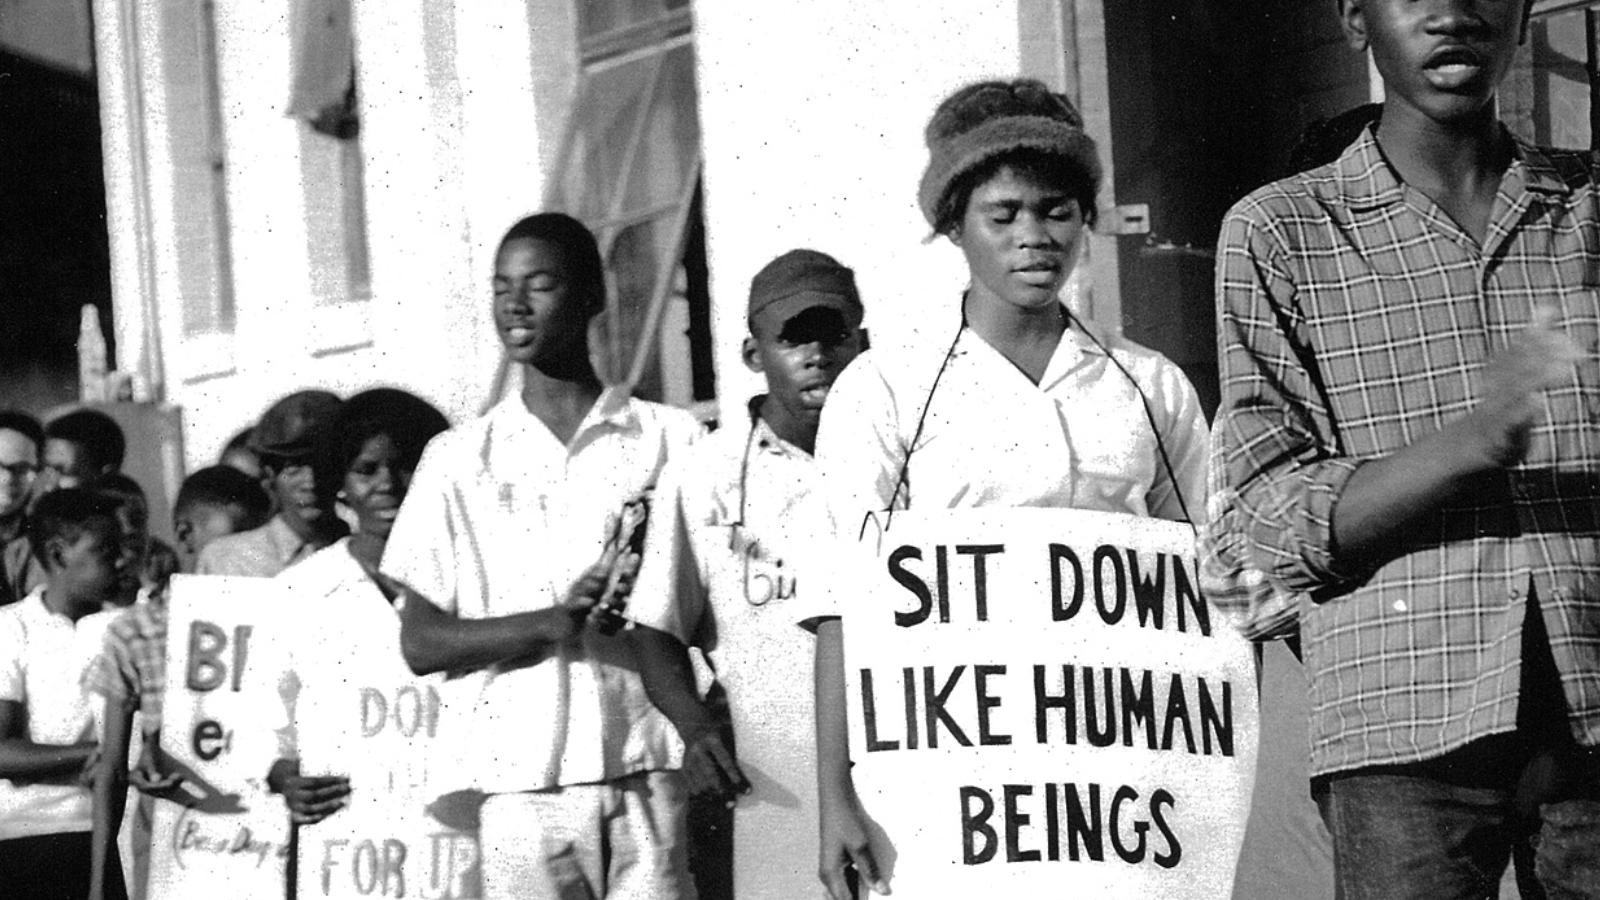 SNCC members participating in protest in Arkansas.